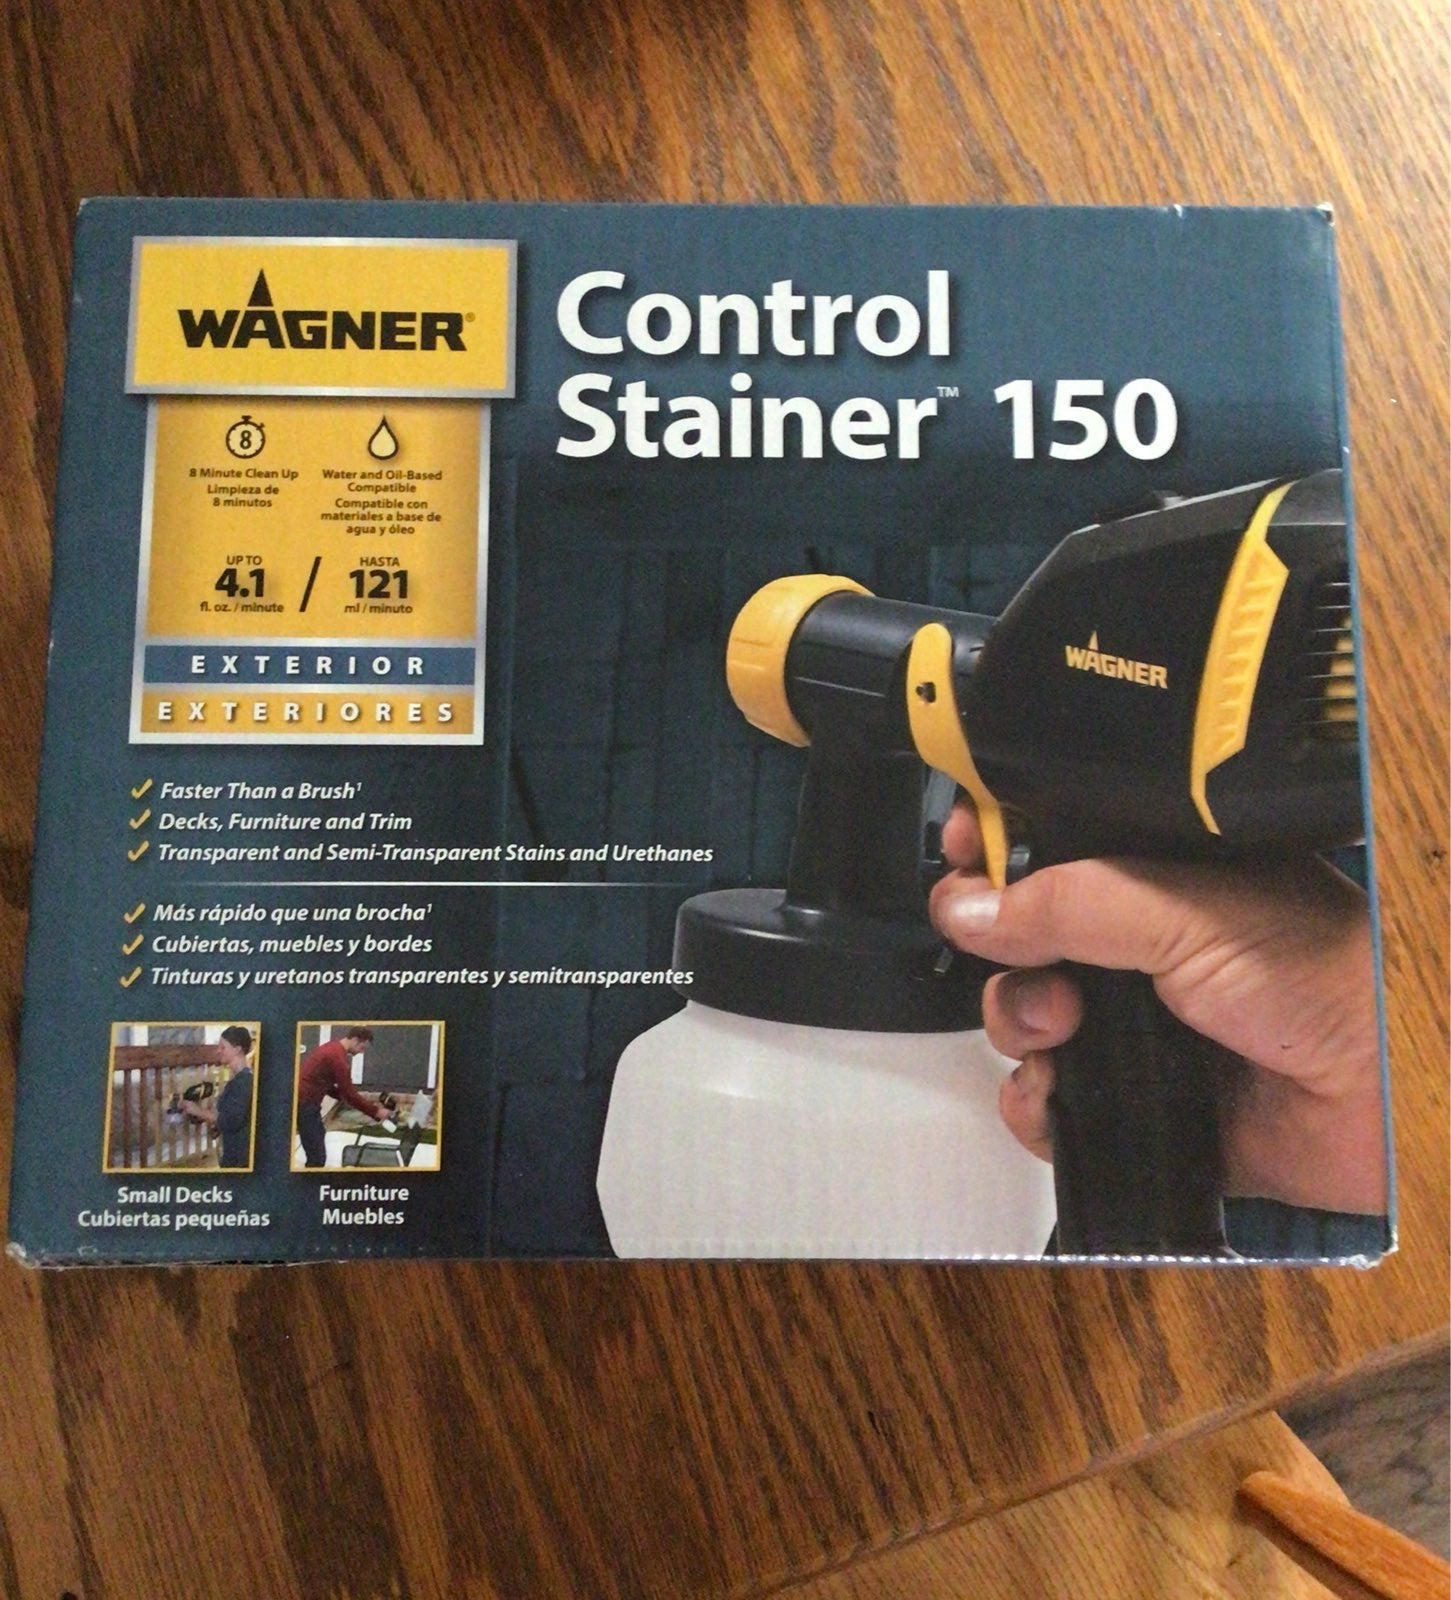 Wagner Control Stainer 150